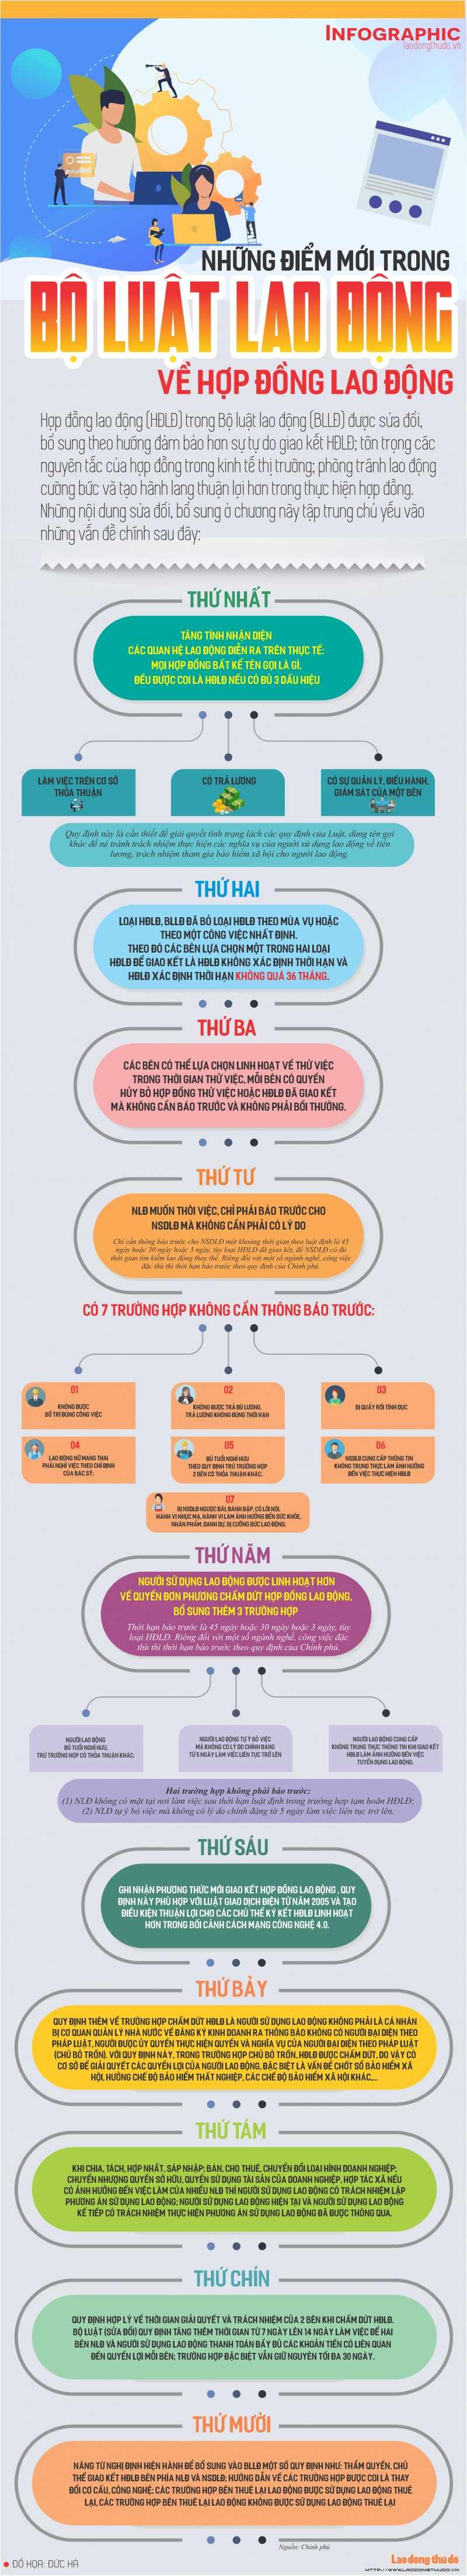 infographic nhung diem moi trong bo luat lao dong ve hop dong lao dong